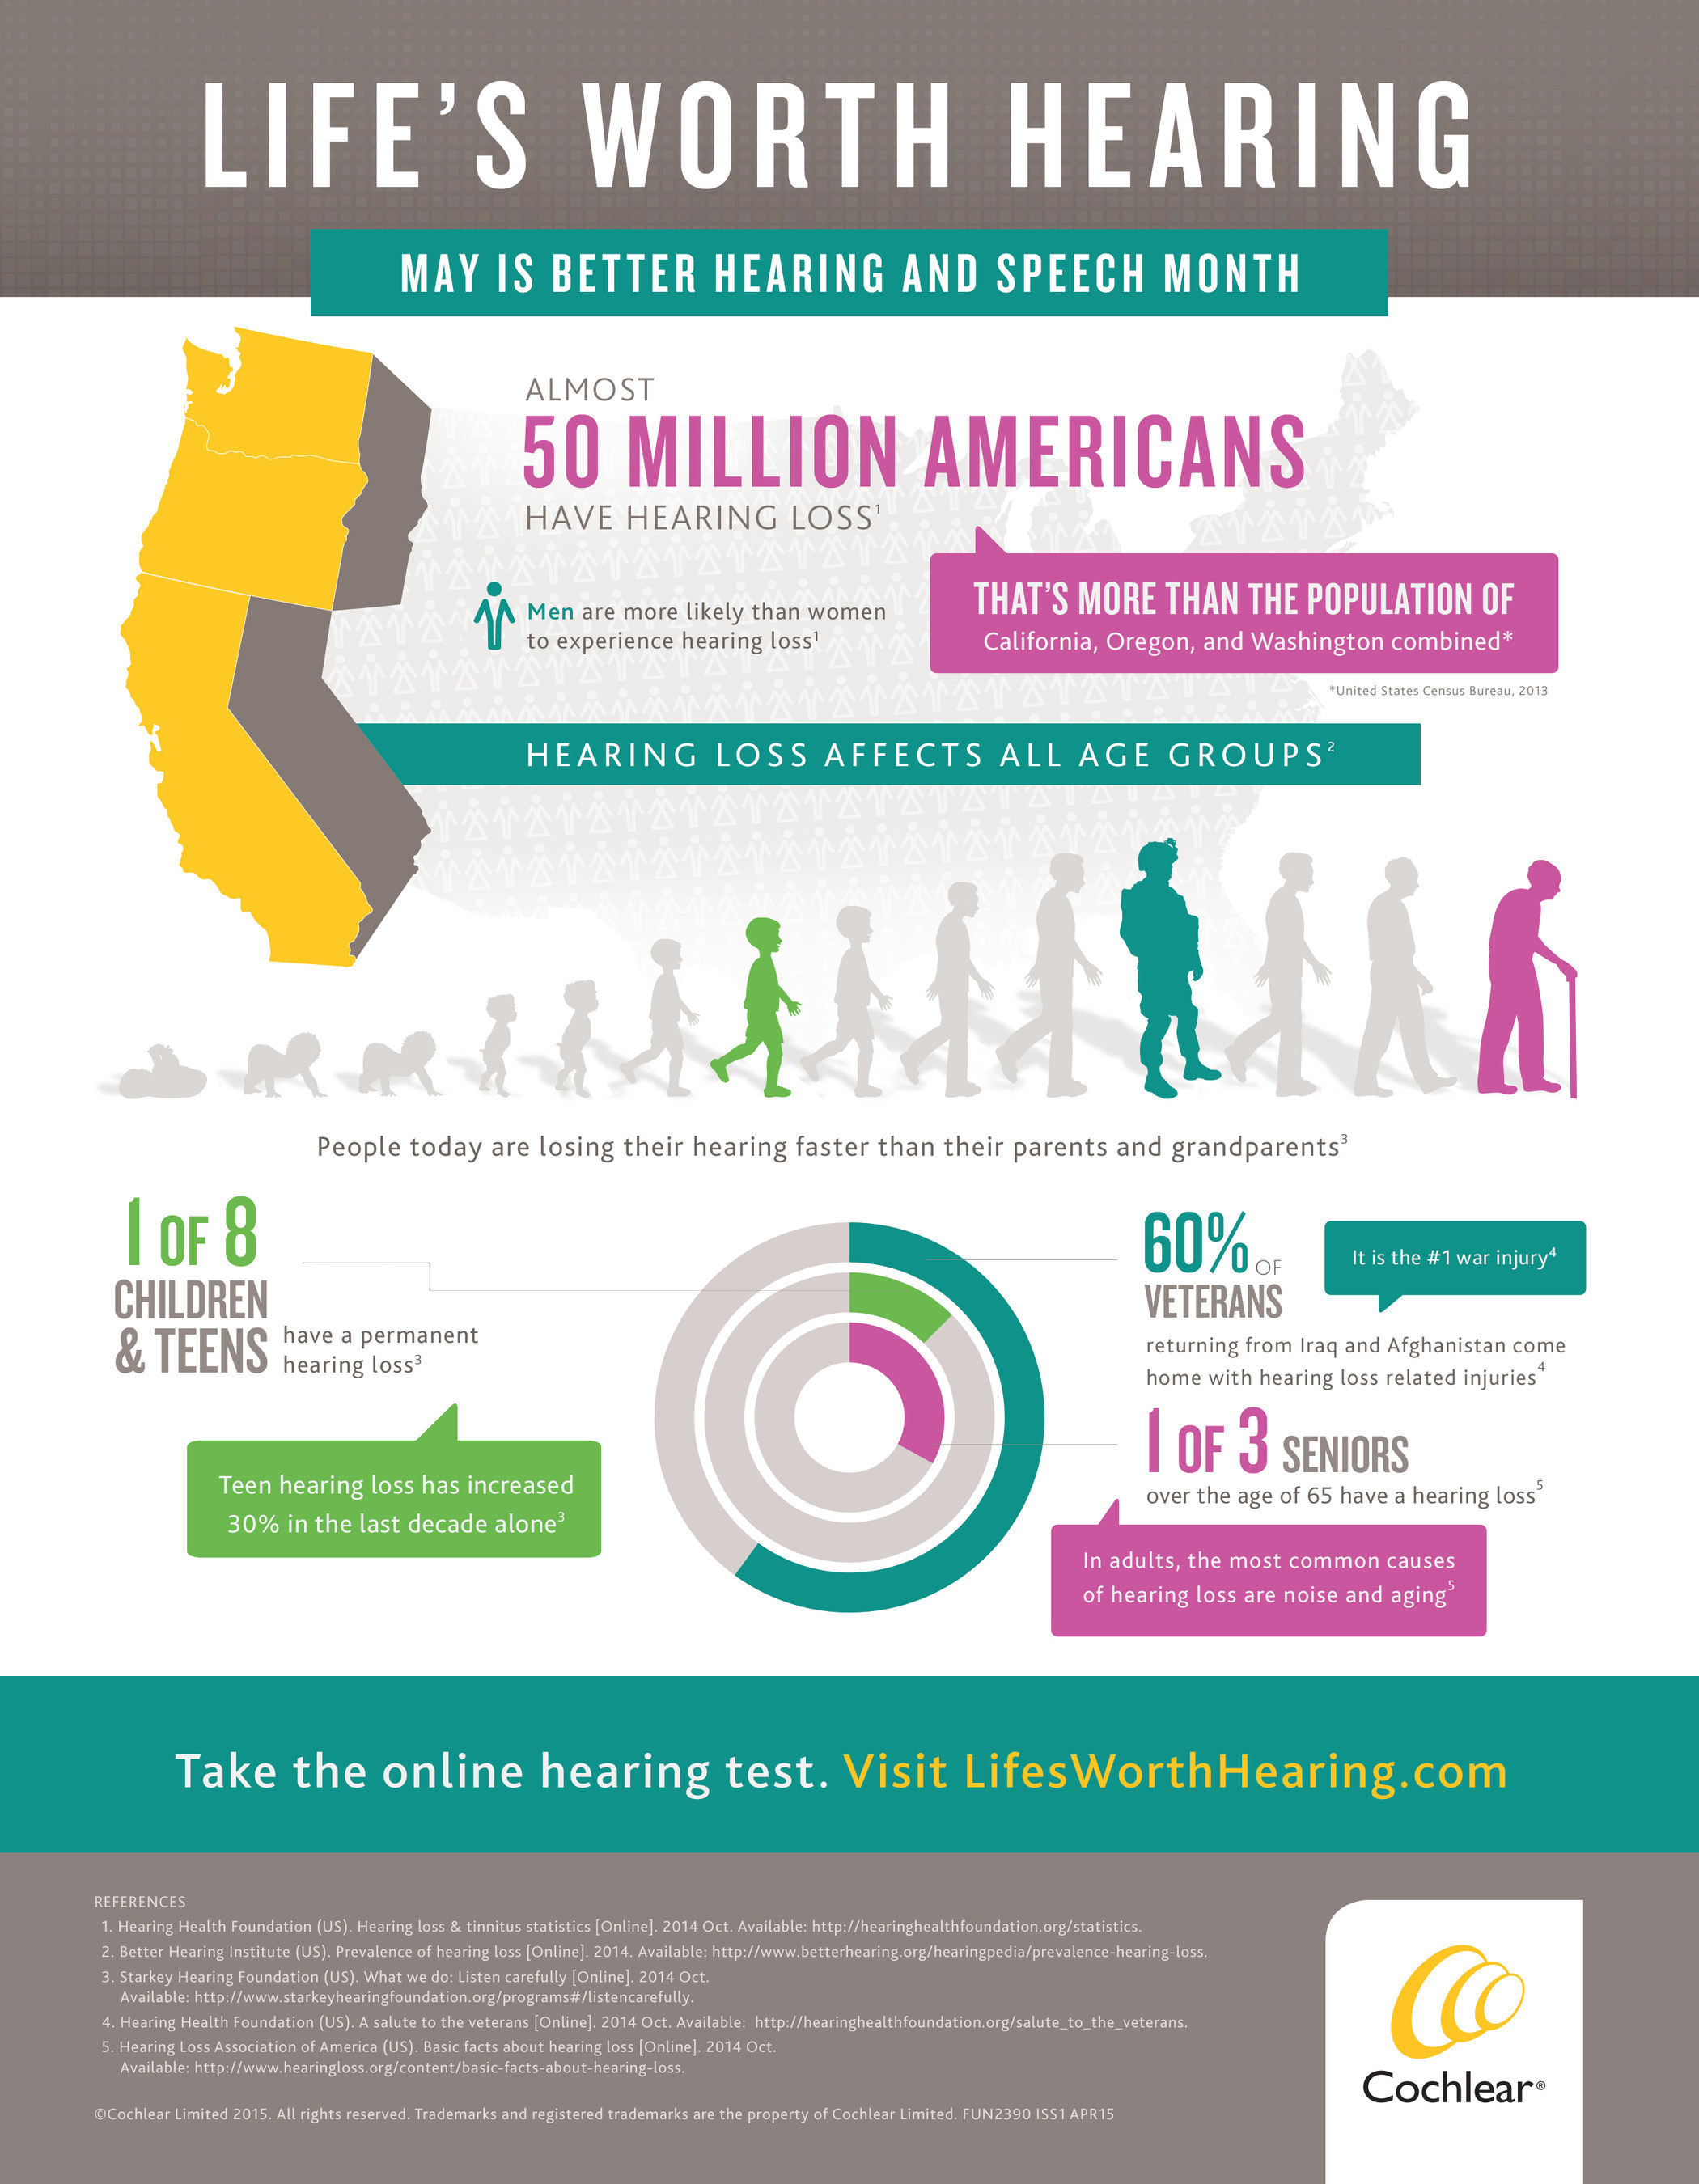 May is Better Hearing & Speech Month, so it is time to learn the facts about how addressing hearing loss can help change your life.